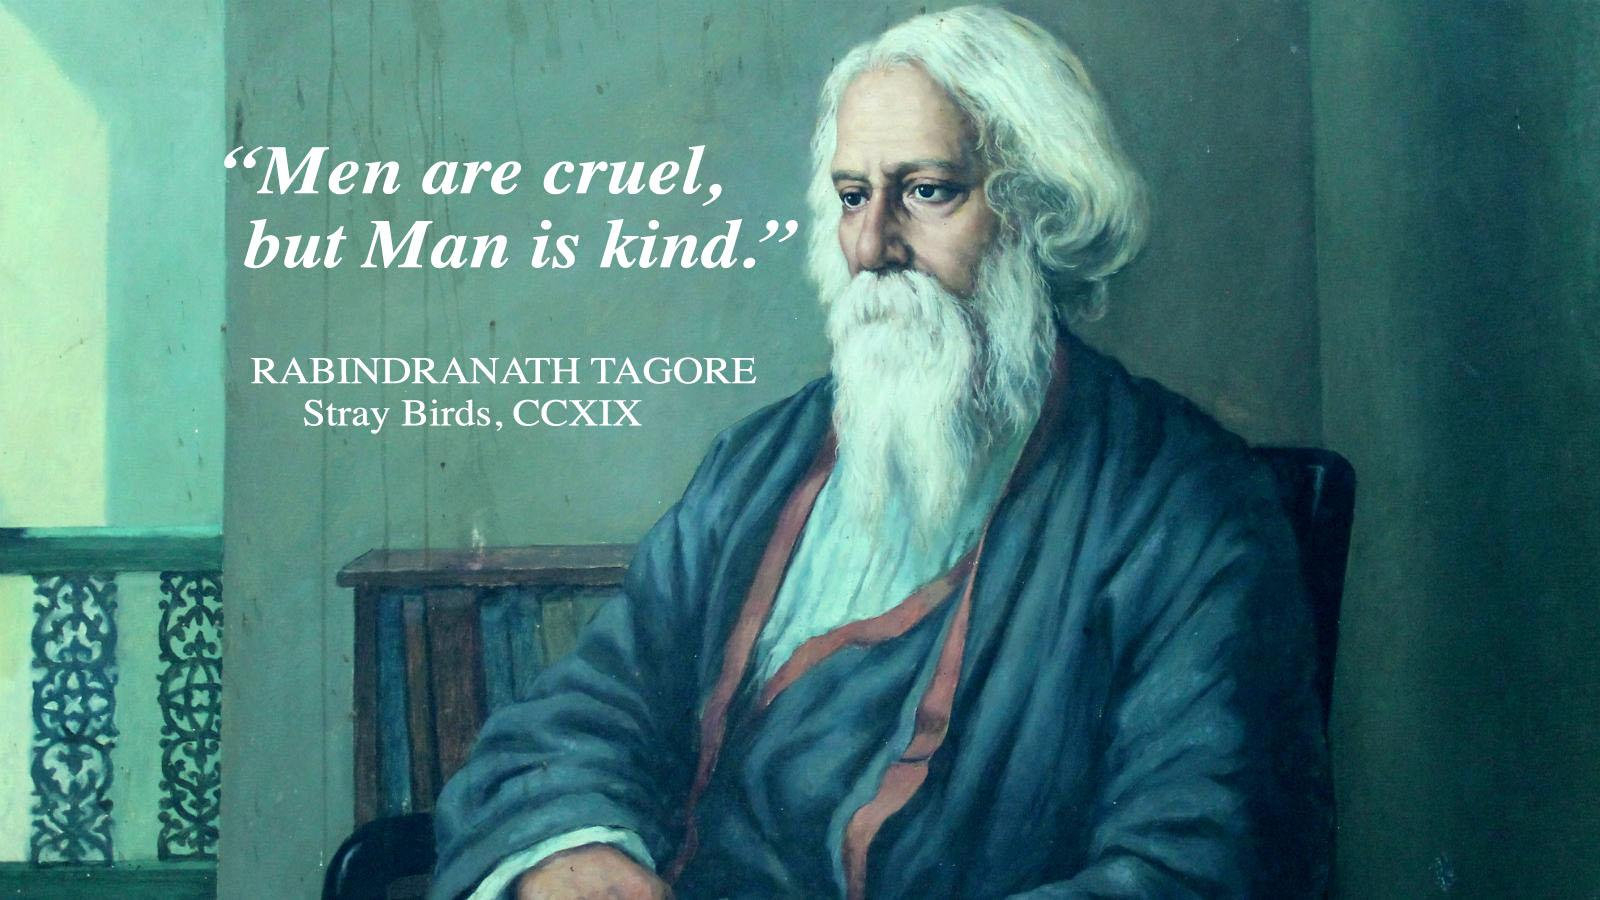 """Men are cruel, but Man is kind."" -Rabindranath Tagore [1600×900]"